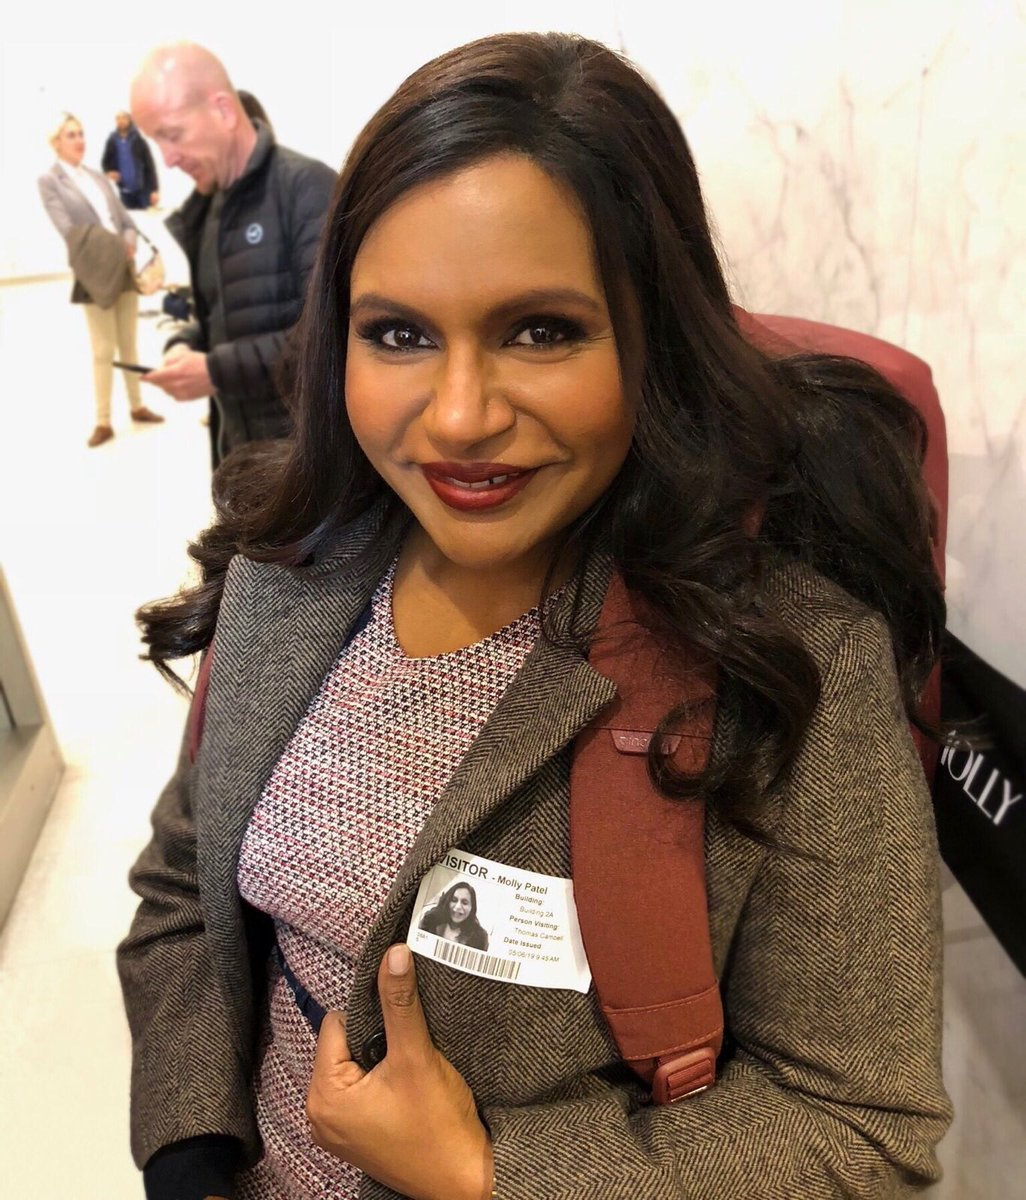 Mindy Kaling On Twitter Fbf To The Long Tiring Super Fun Days Of Writing Filming Latenightmovie I M So Grateful To Call Working With Funny Talented Folks My Job Today